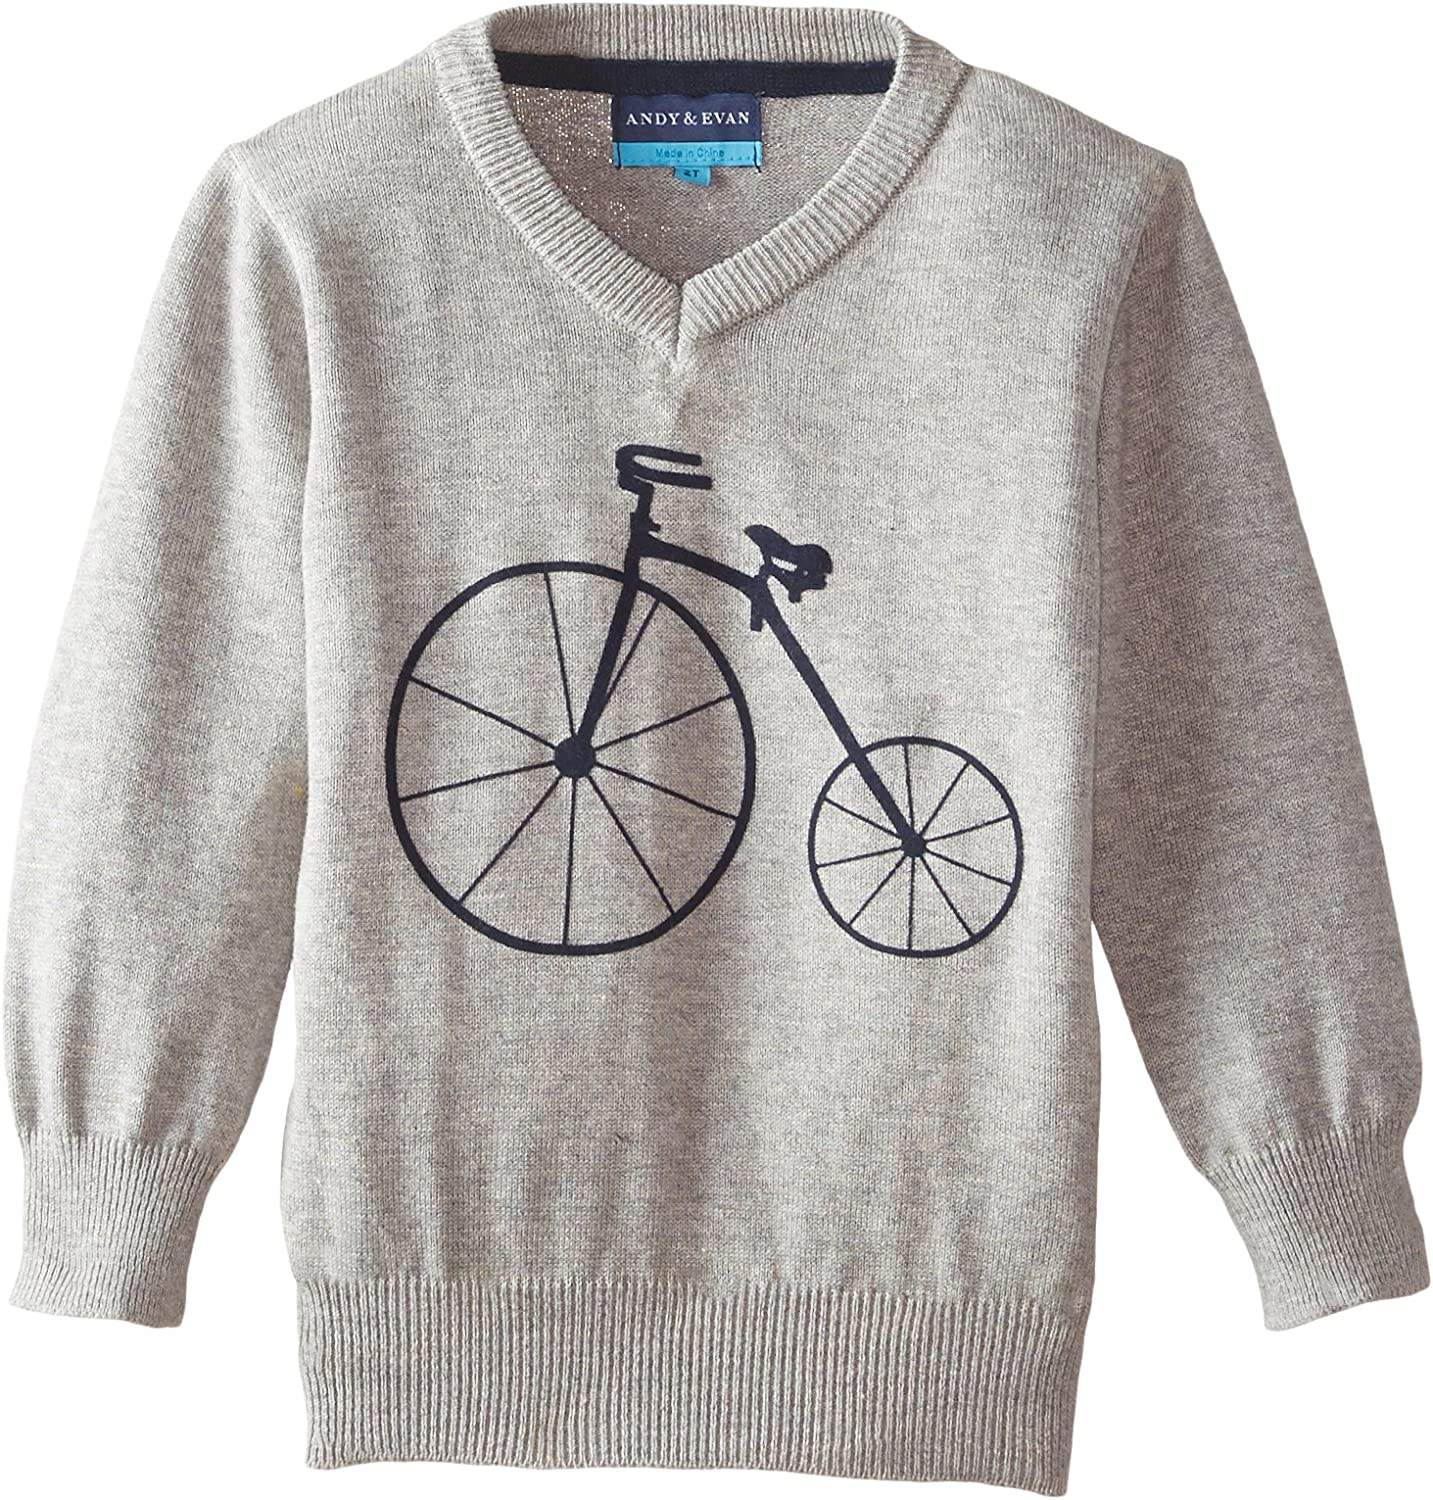 Andy Evan Little Cheap Boys' 2021 spring and summer new Sweater Bicycle Grey